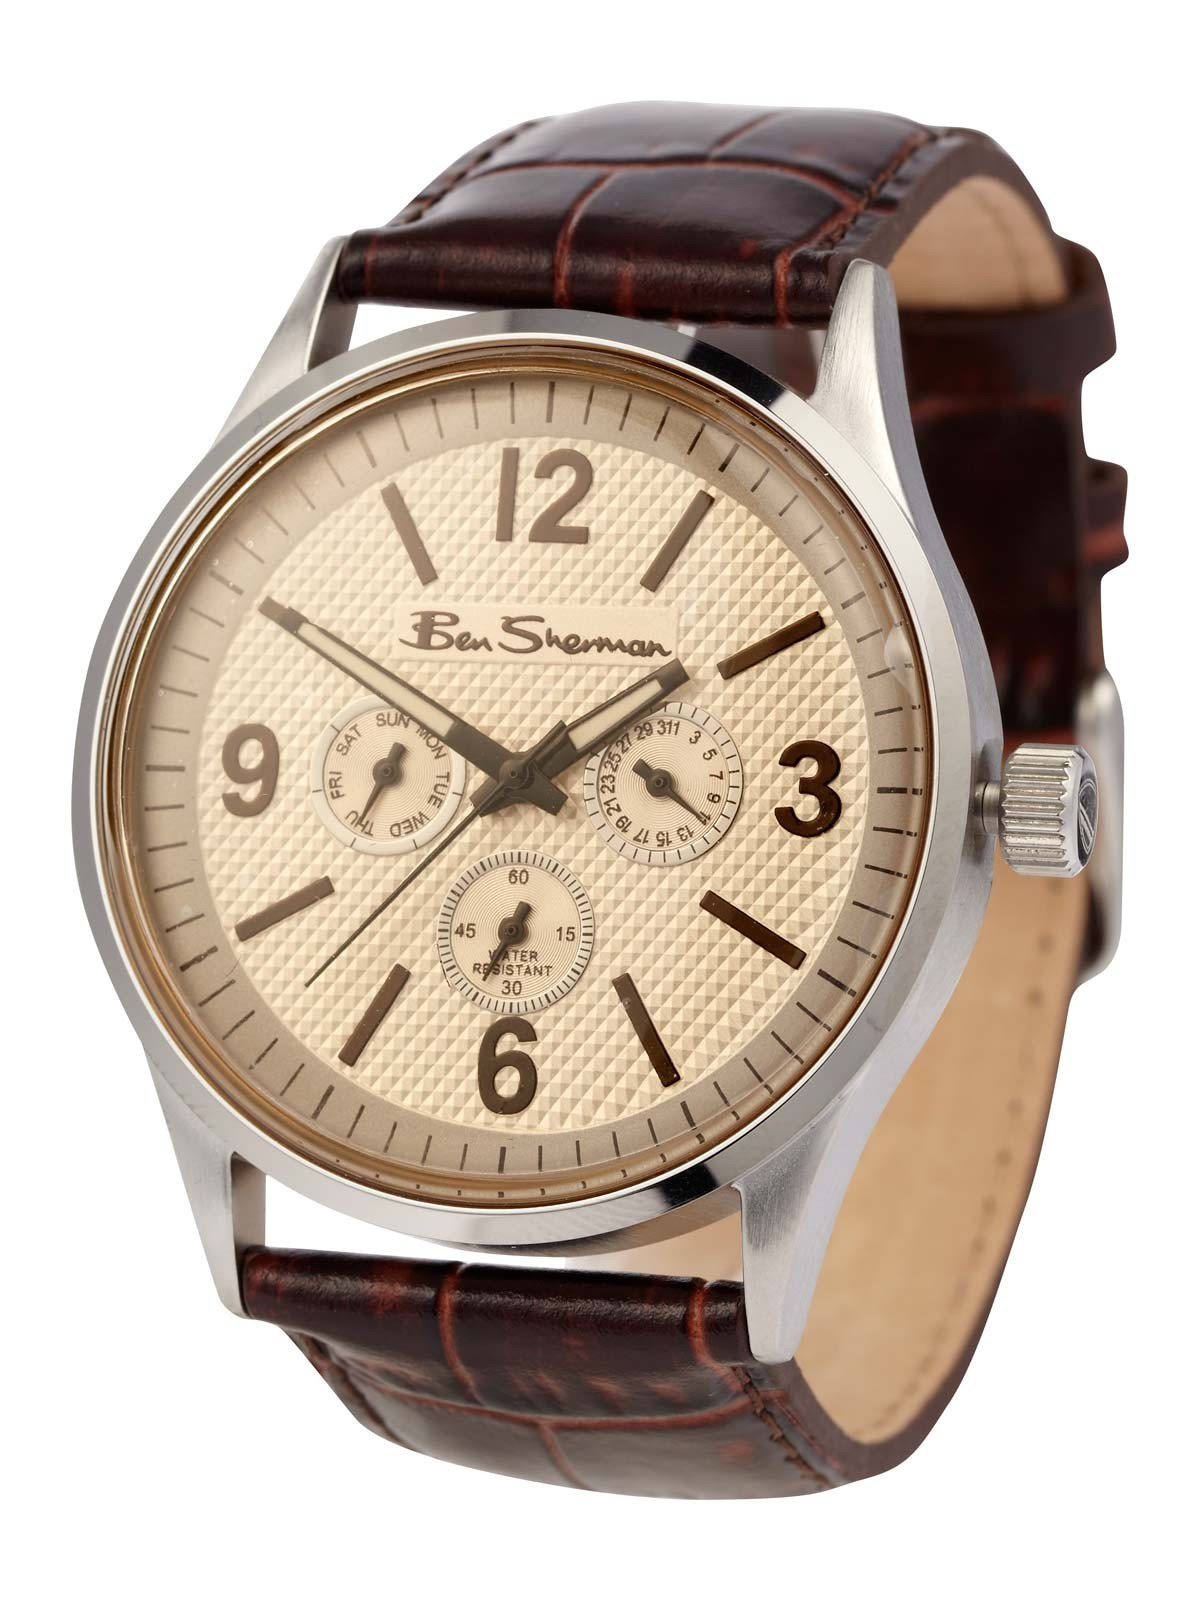 Round Dial Watch by Ben Sherman Ben Sherman Chronograph